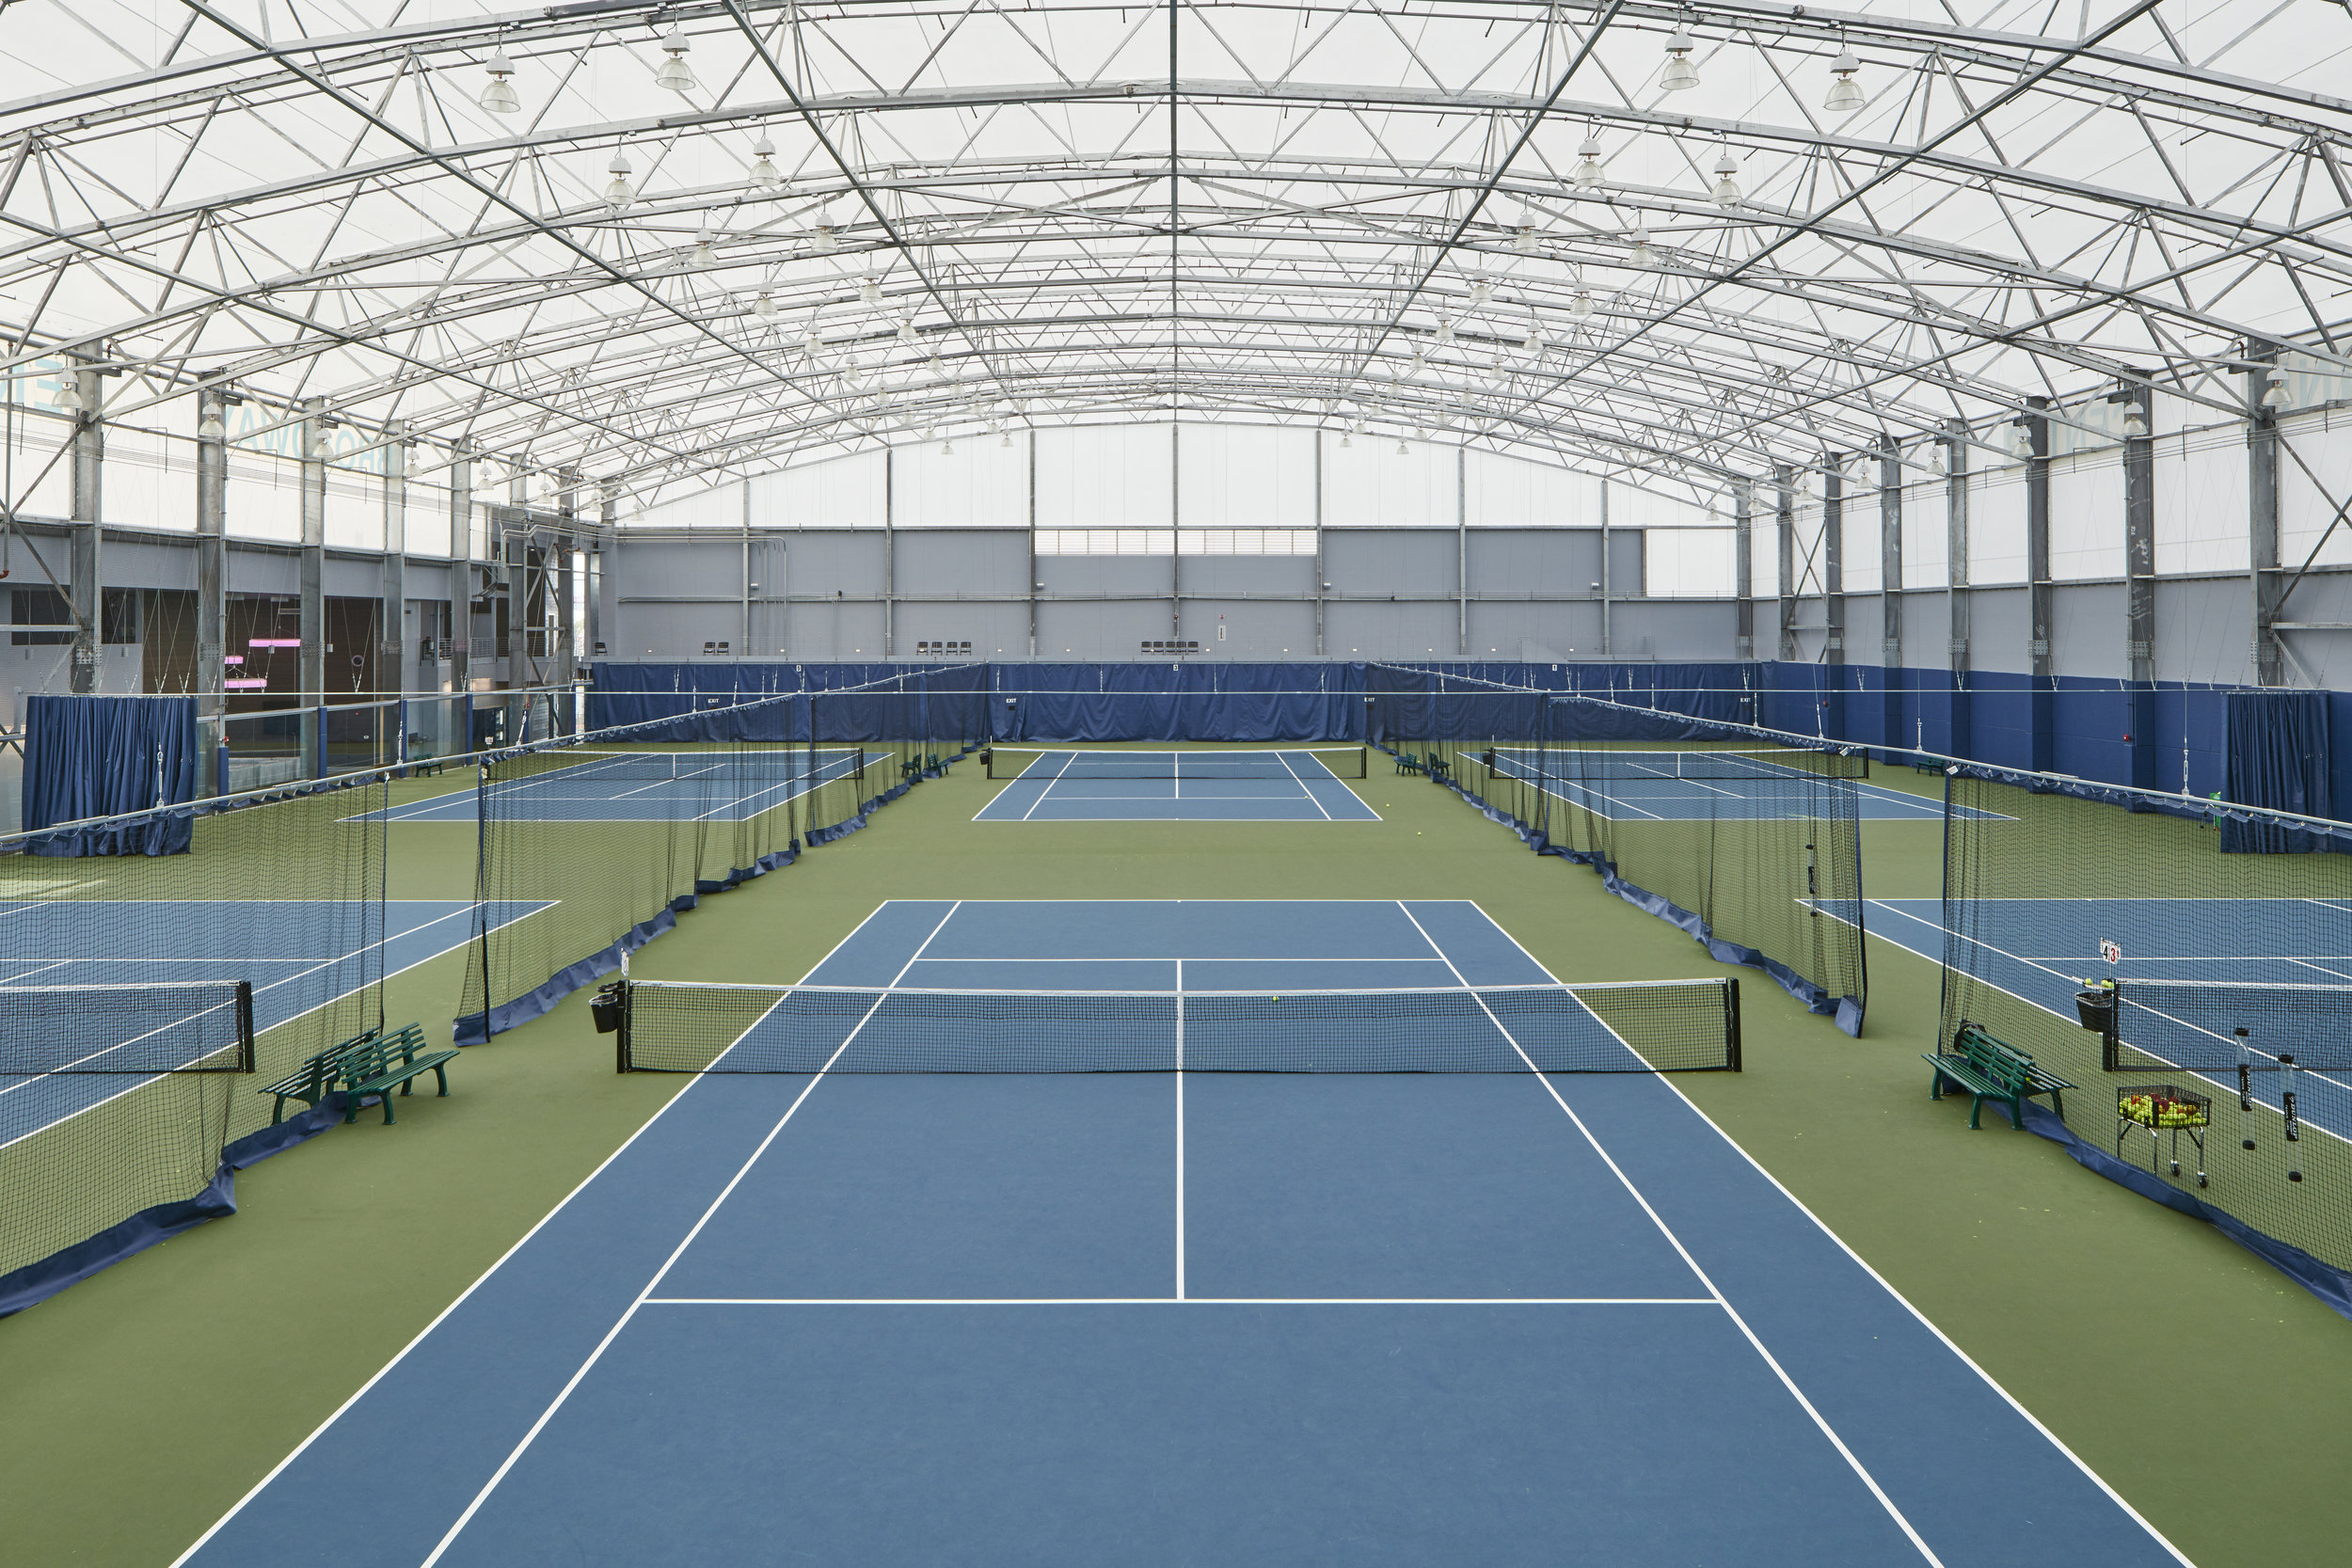 Swatt_Miers_Broadway_Tennis_Center-35 (2).jpg